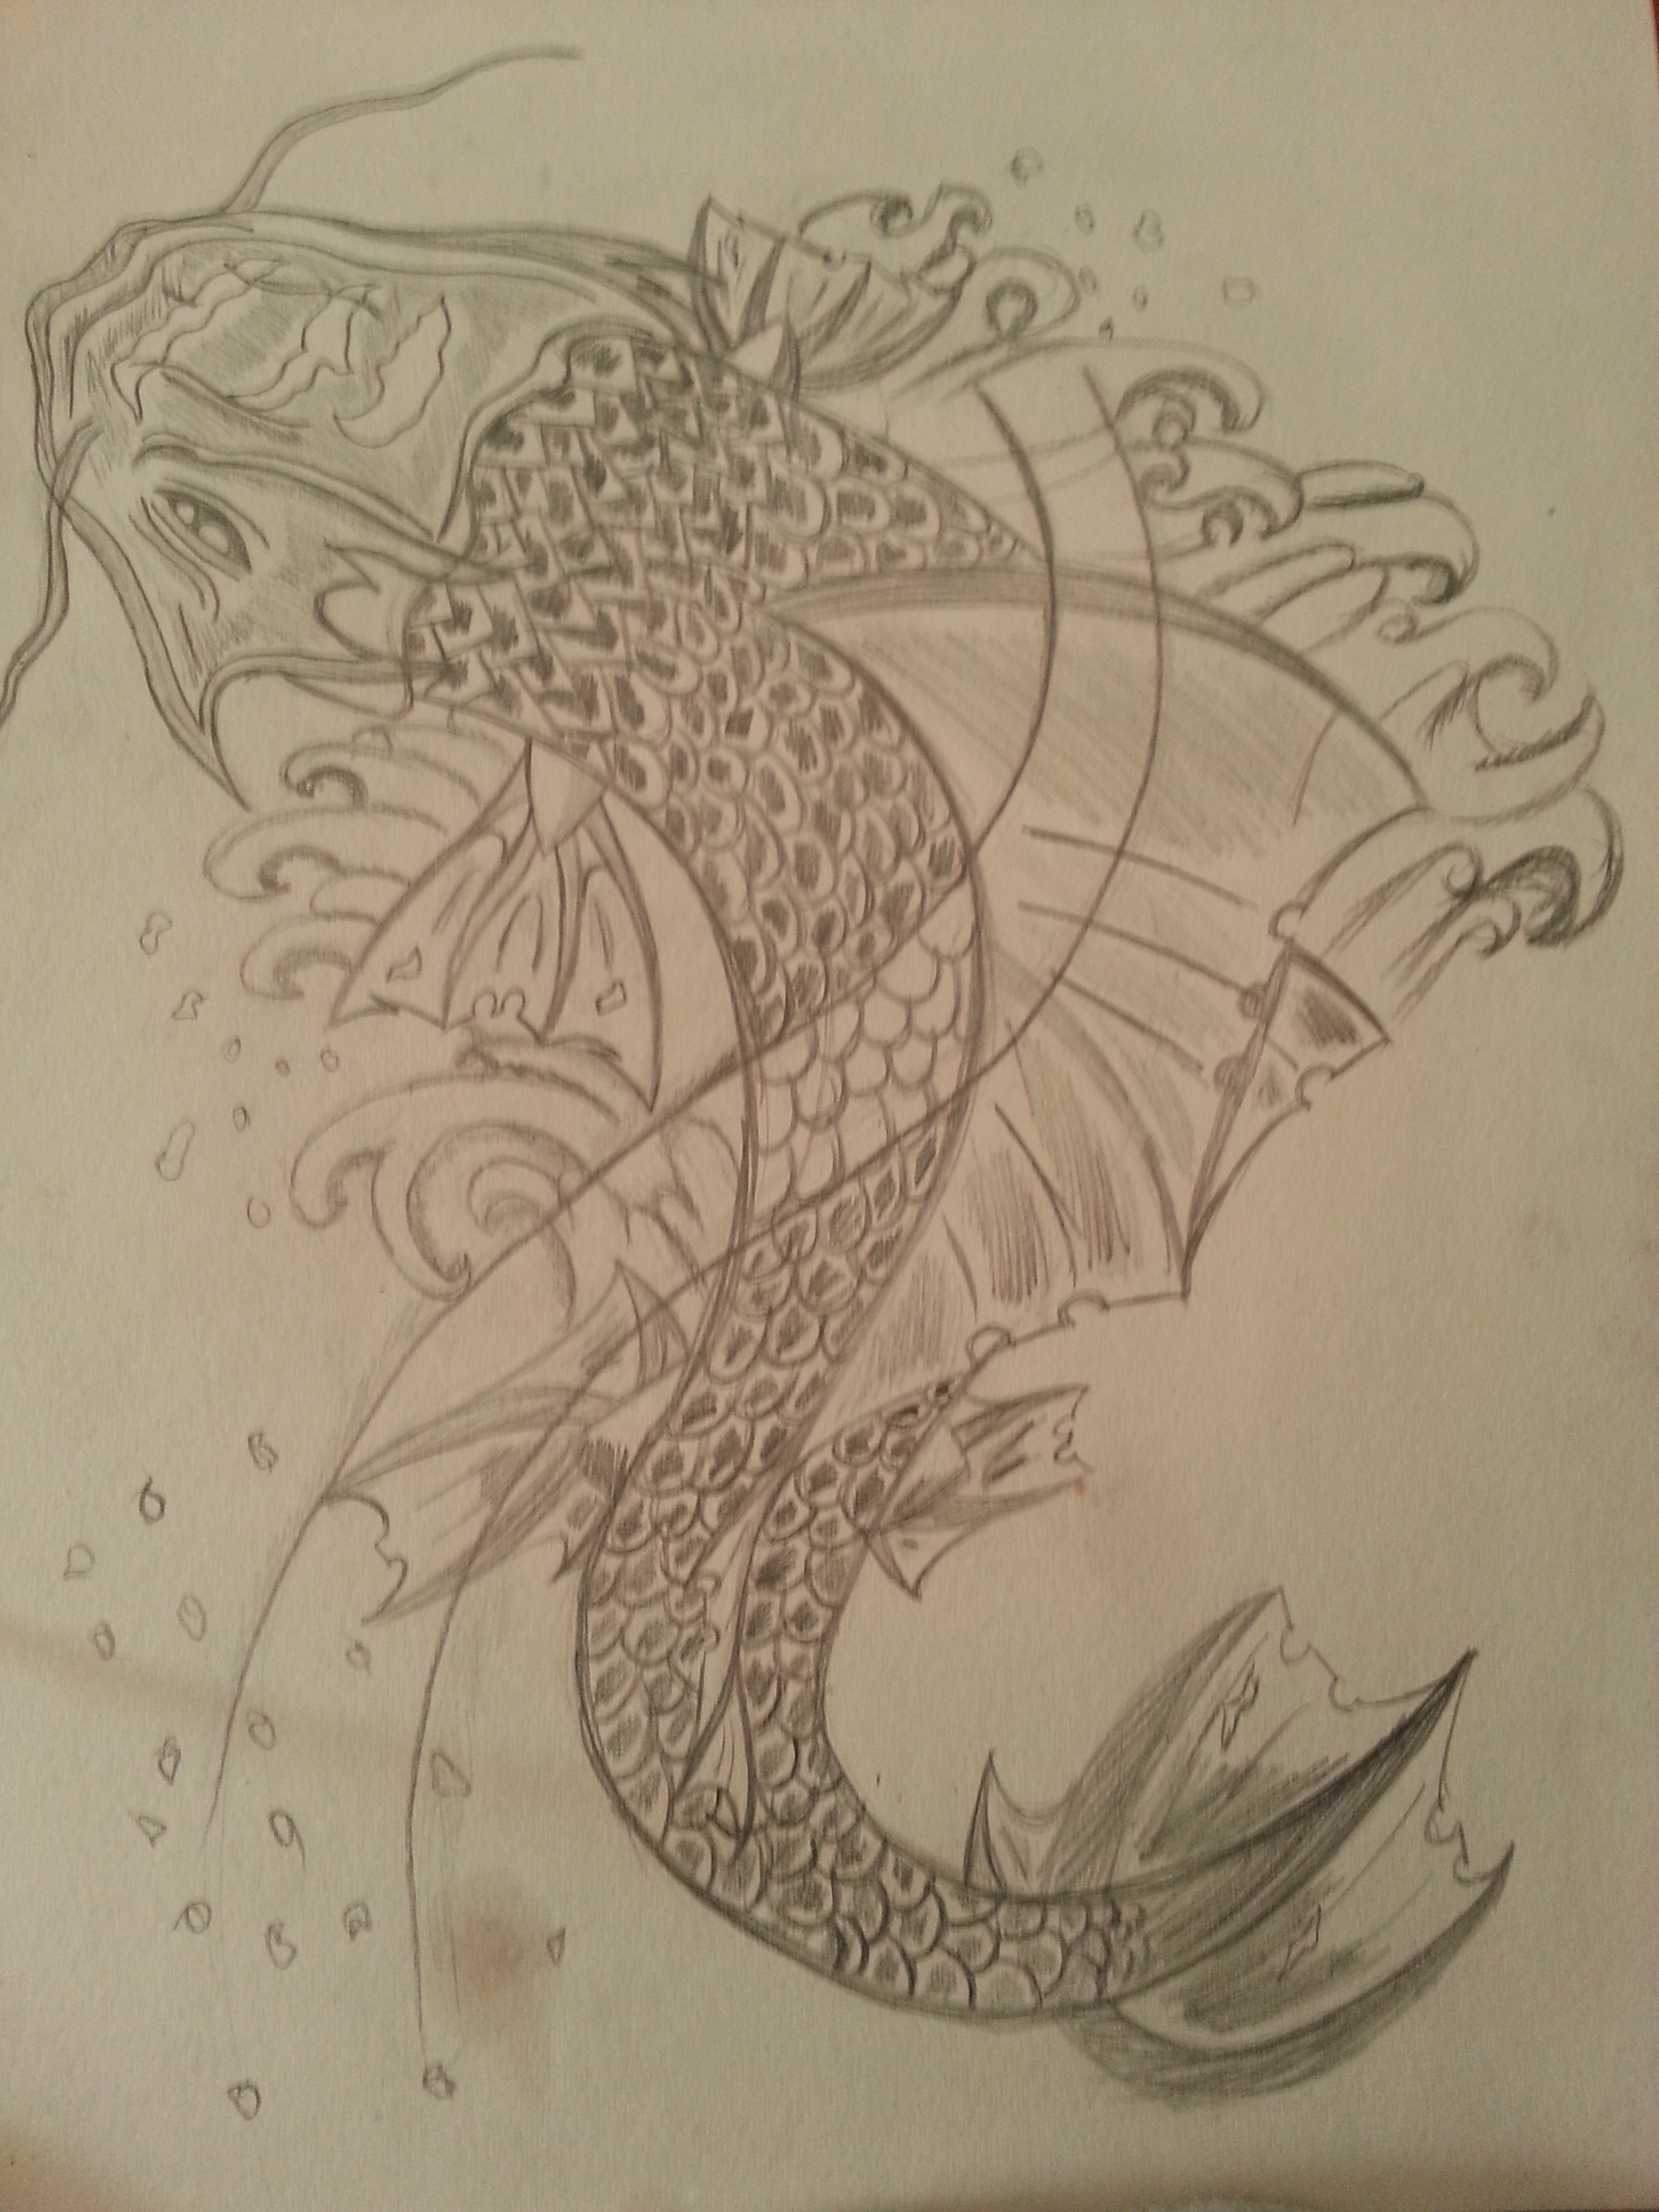 Koi fish sketch n 2 by flaviudraghis on deviantart for Koi fish sketch